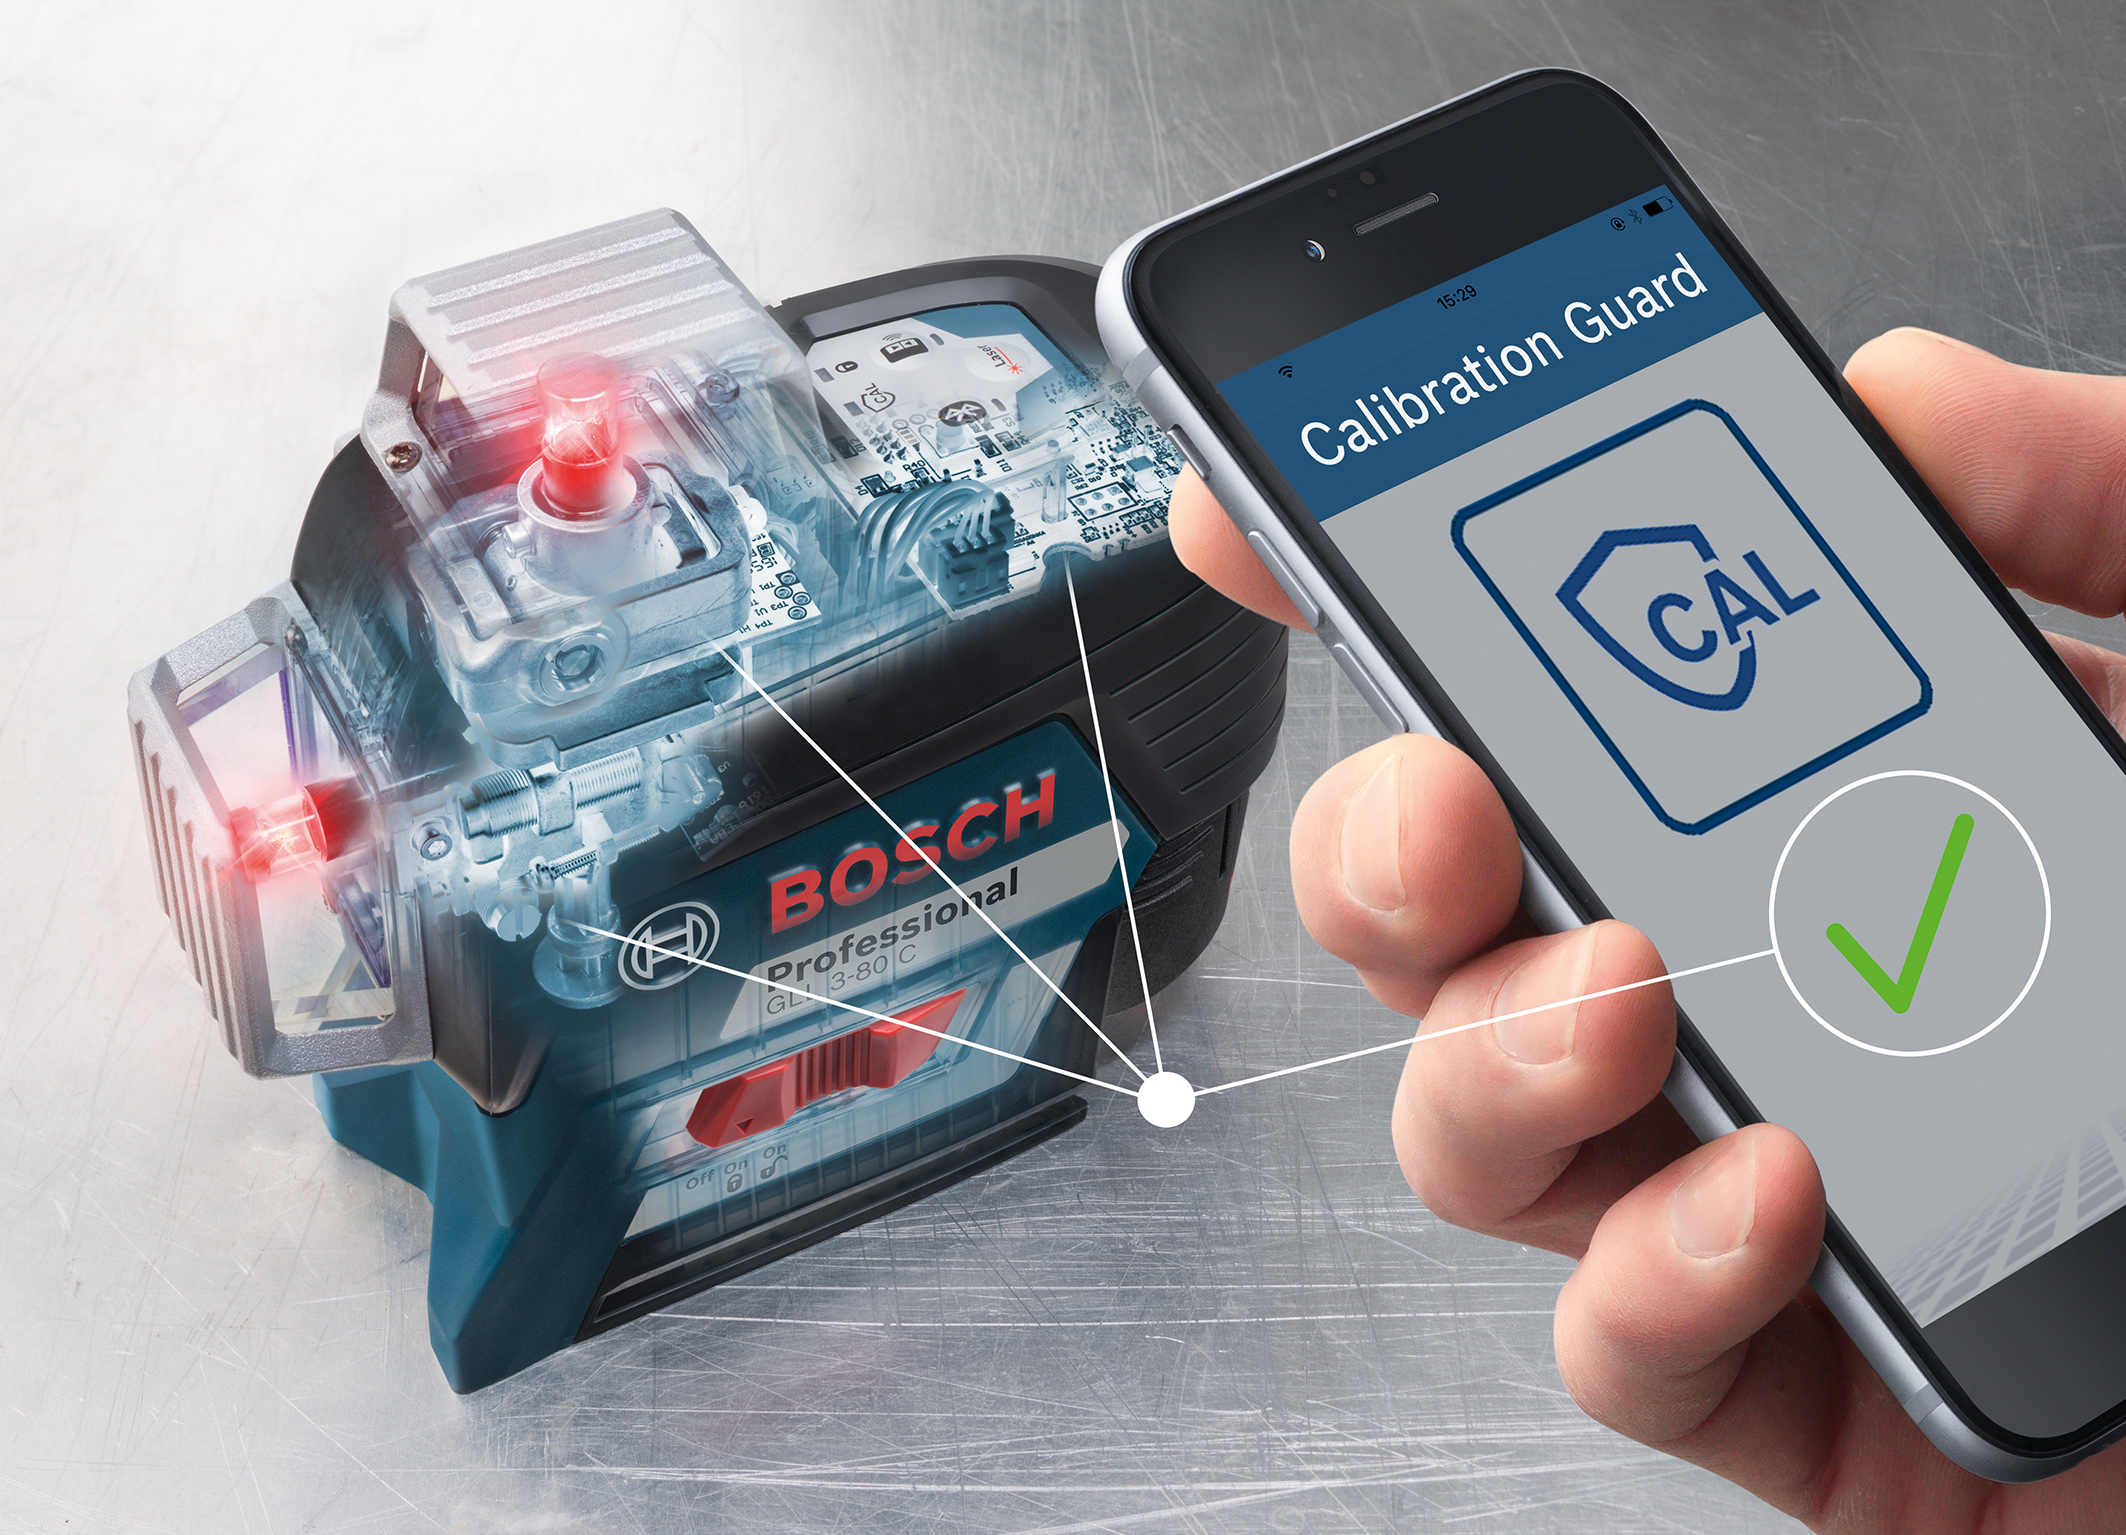 Bosch sensors monitor calibration: New generation of professional Bosch line lasers